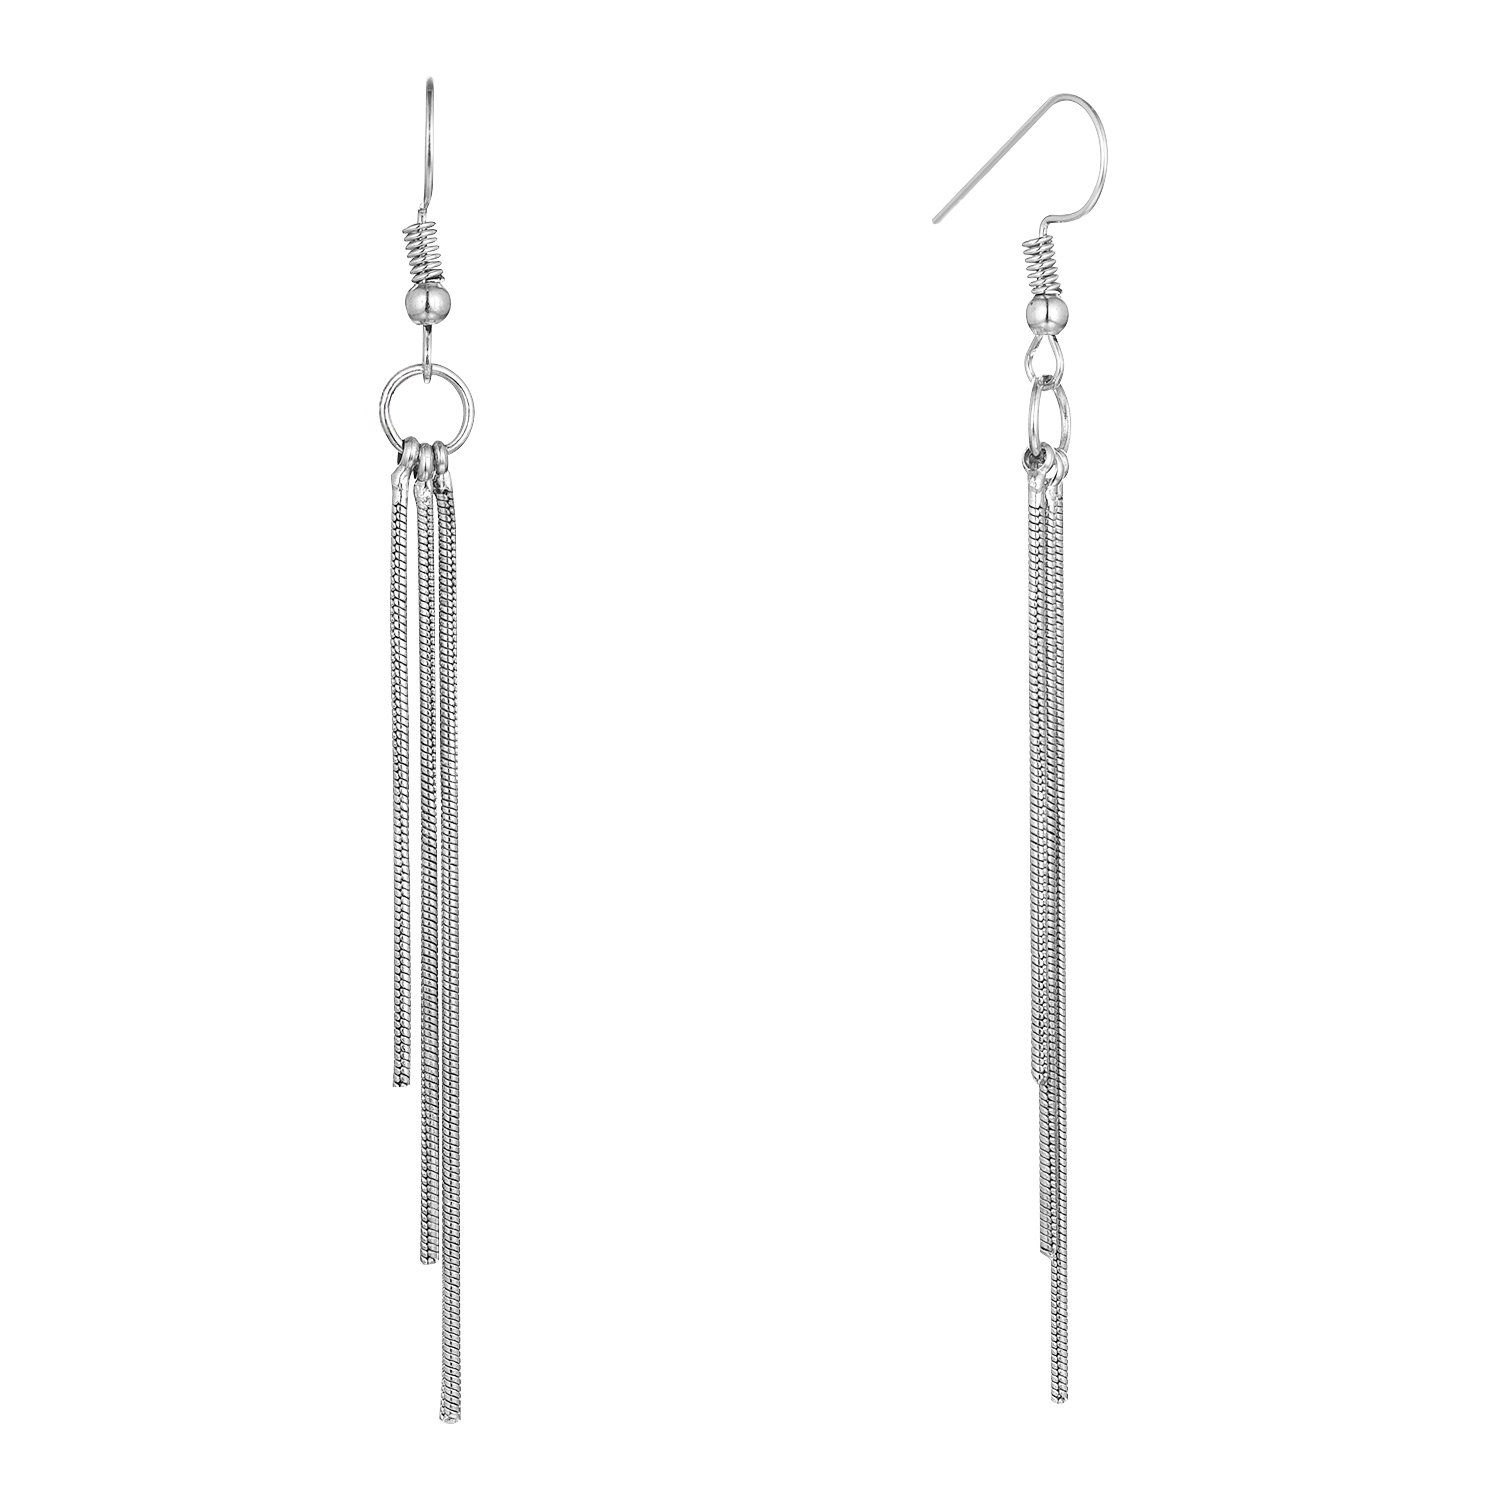 Starchenie Tassel Earrings for Women,Girls Dangle Earrings Line Drop Earrings